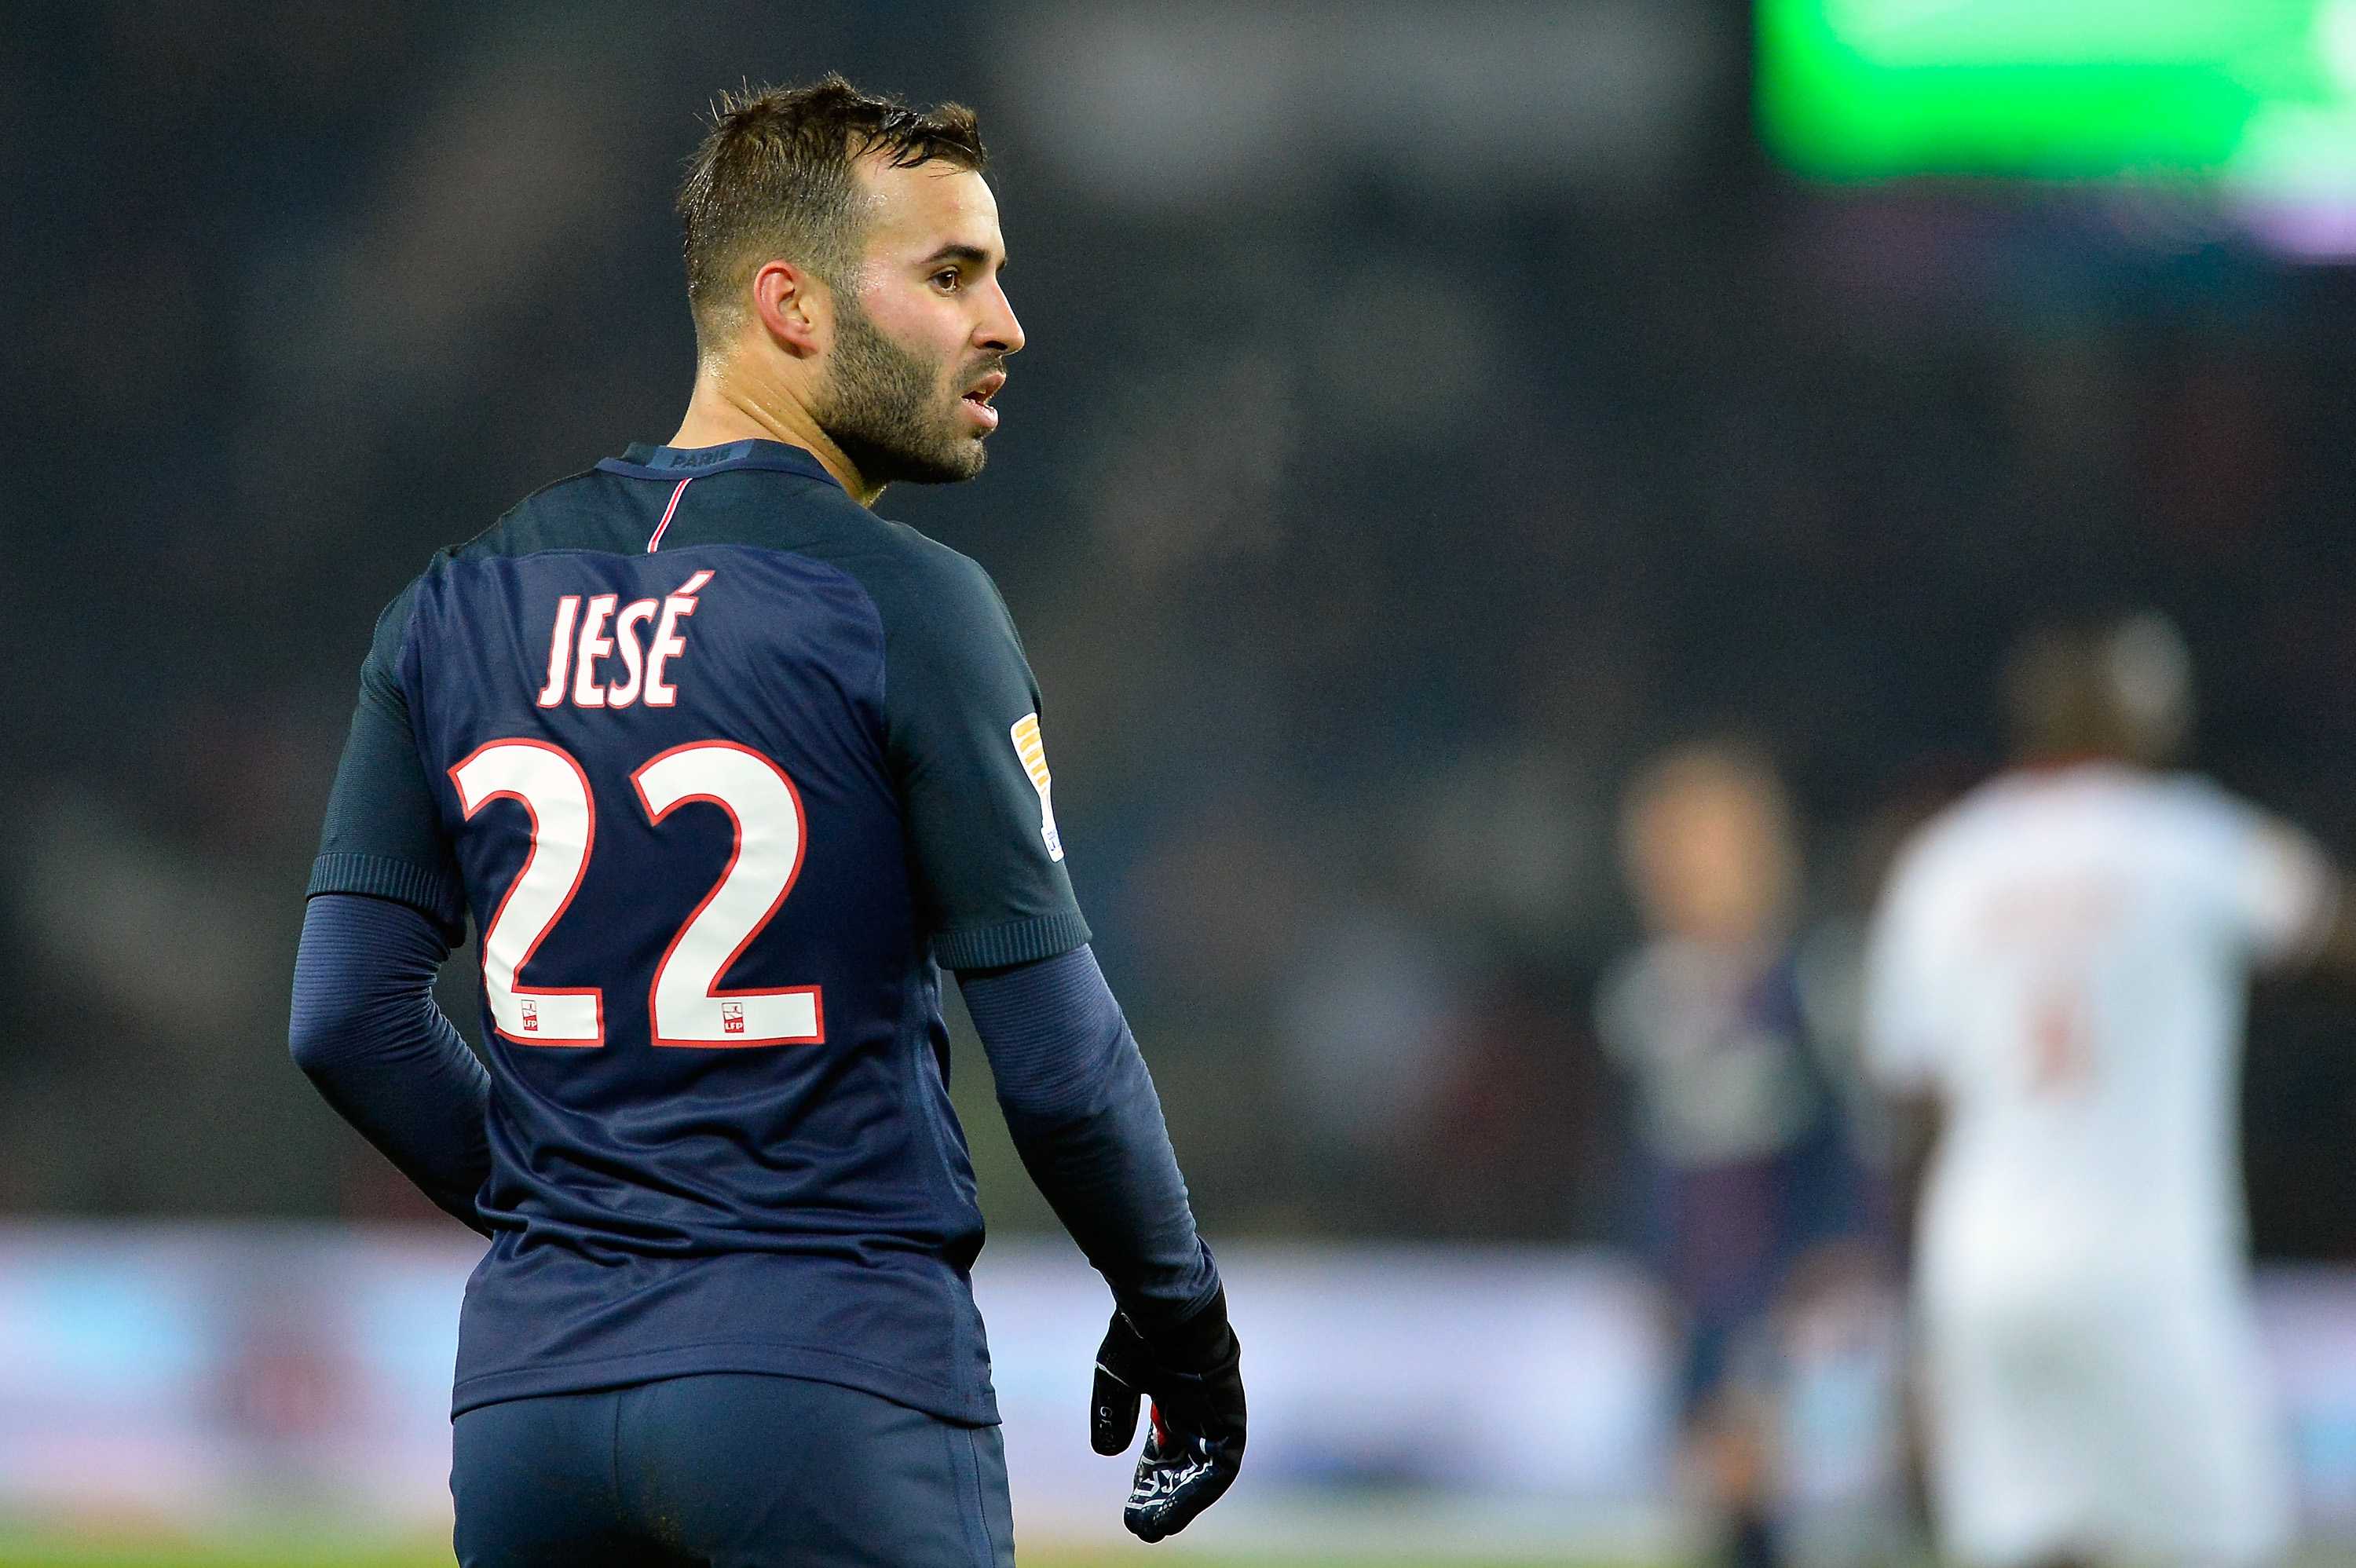 Liverpool transfer target Jese Rodriguez has official offer from Premier League